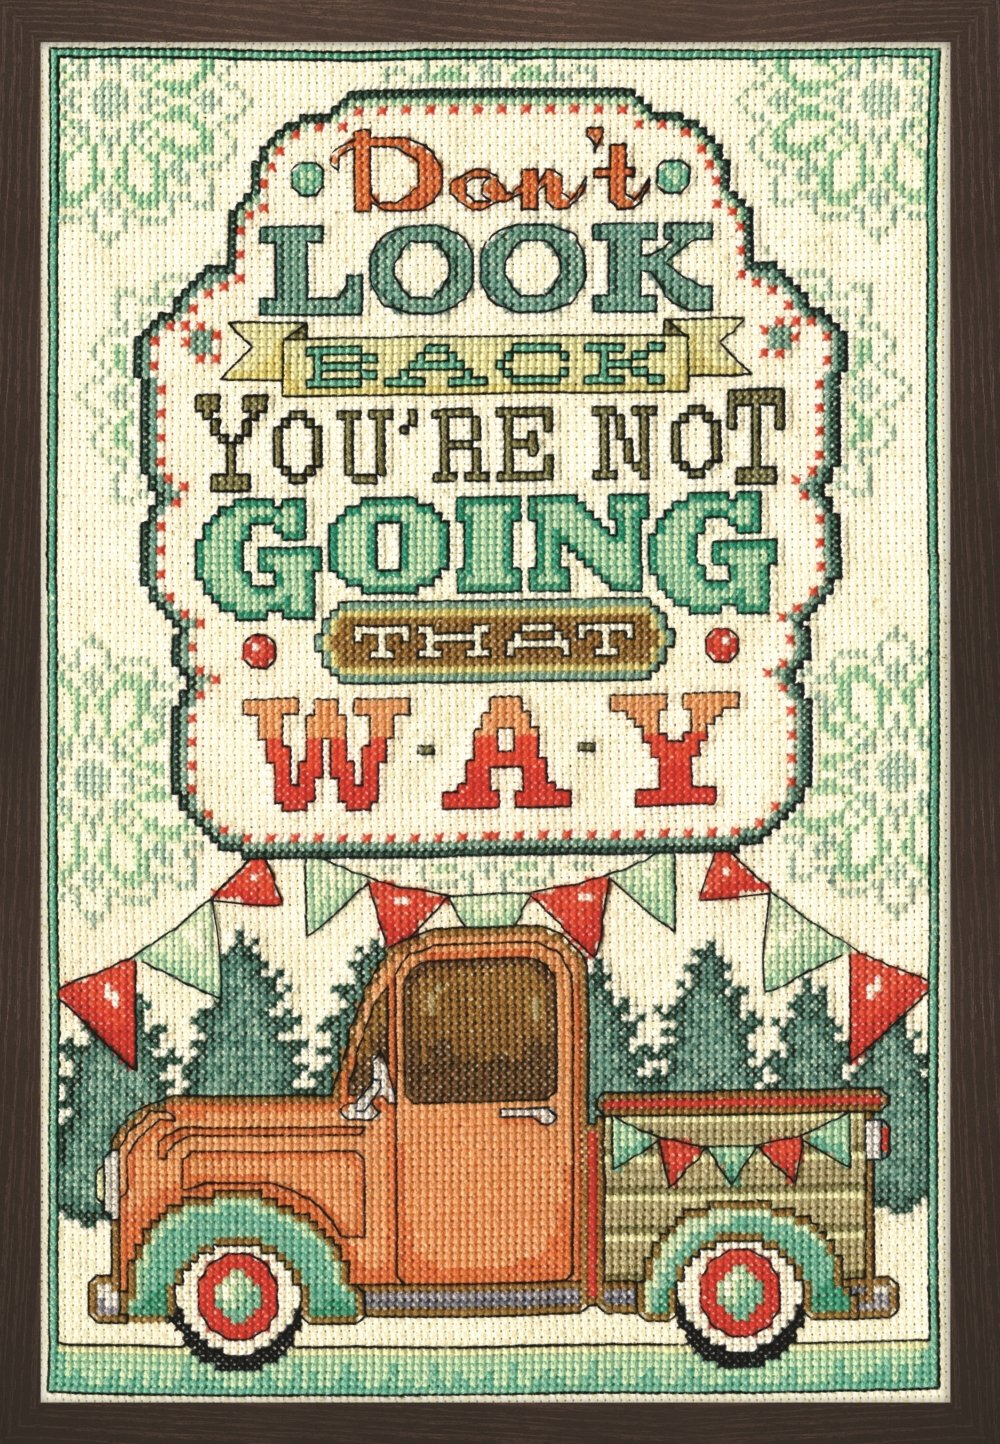 Tobin 2902 14 Count Don't Look Back Counted Cross Stitch Kit, 8 by 12, Multicolor 8 by 12